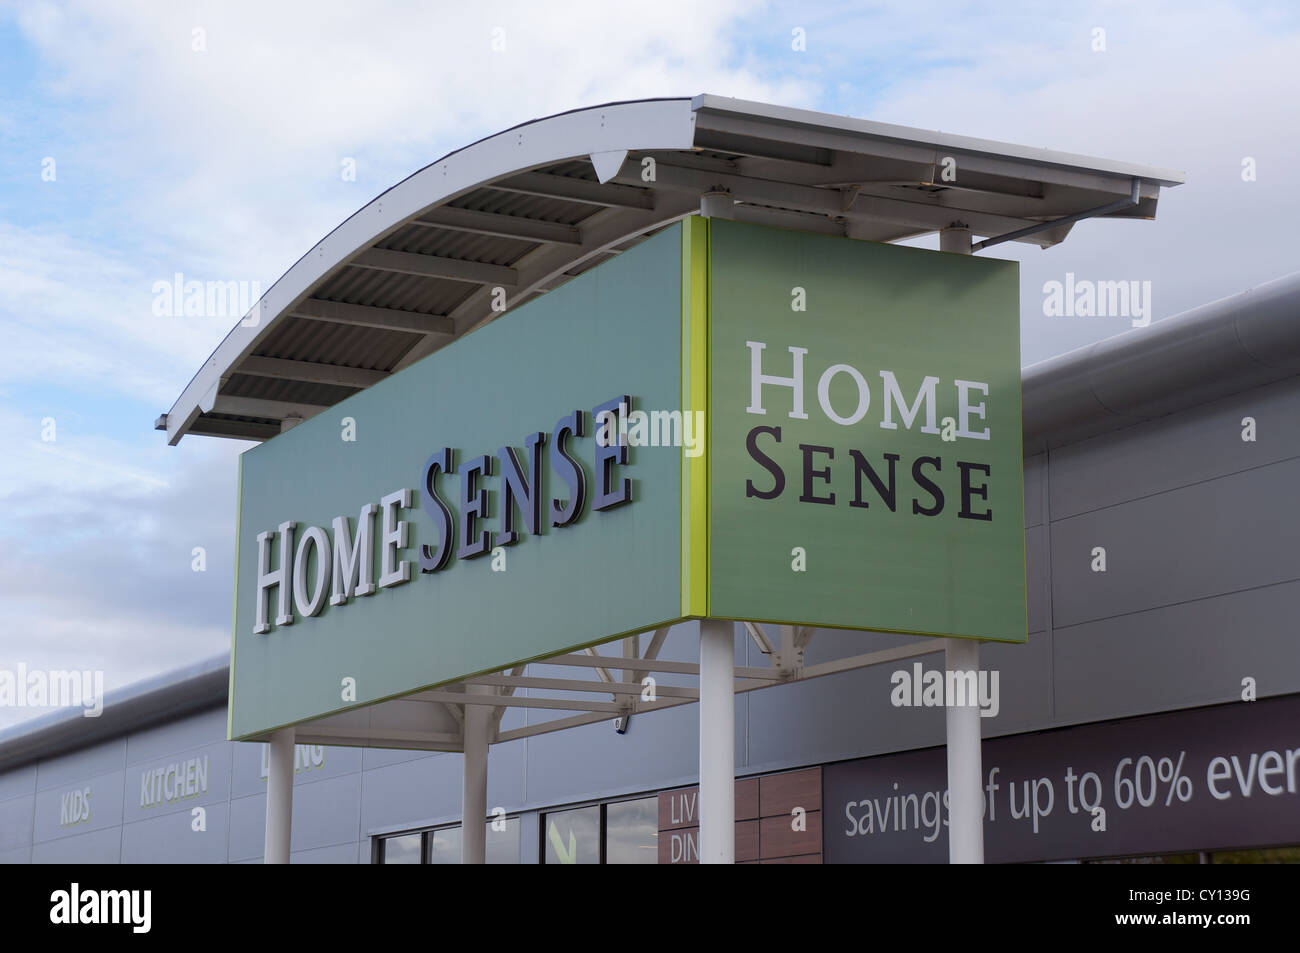 home sense store, merry hill, uk - Stock Image